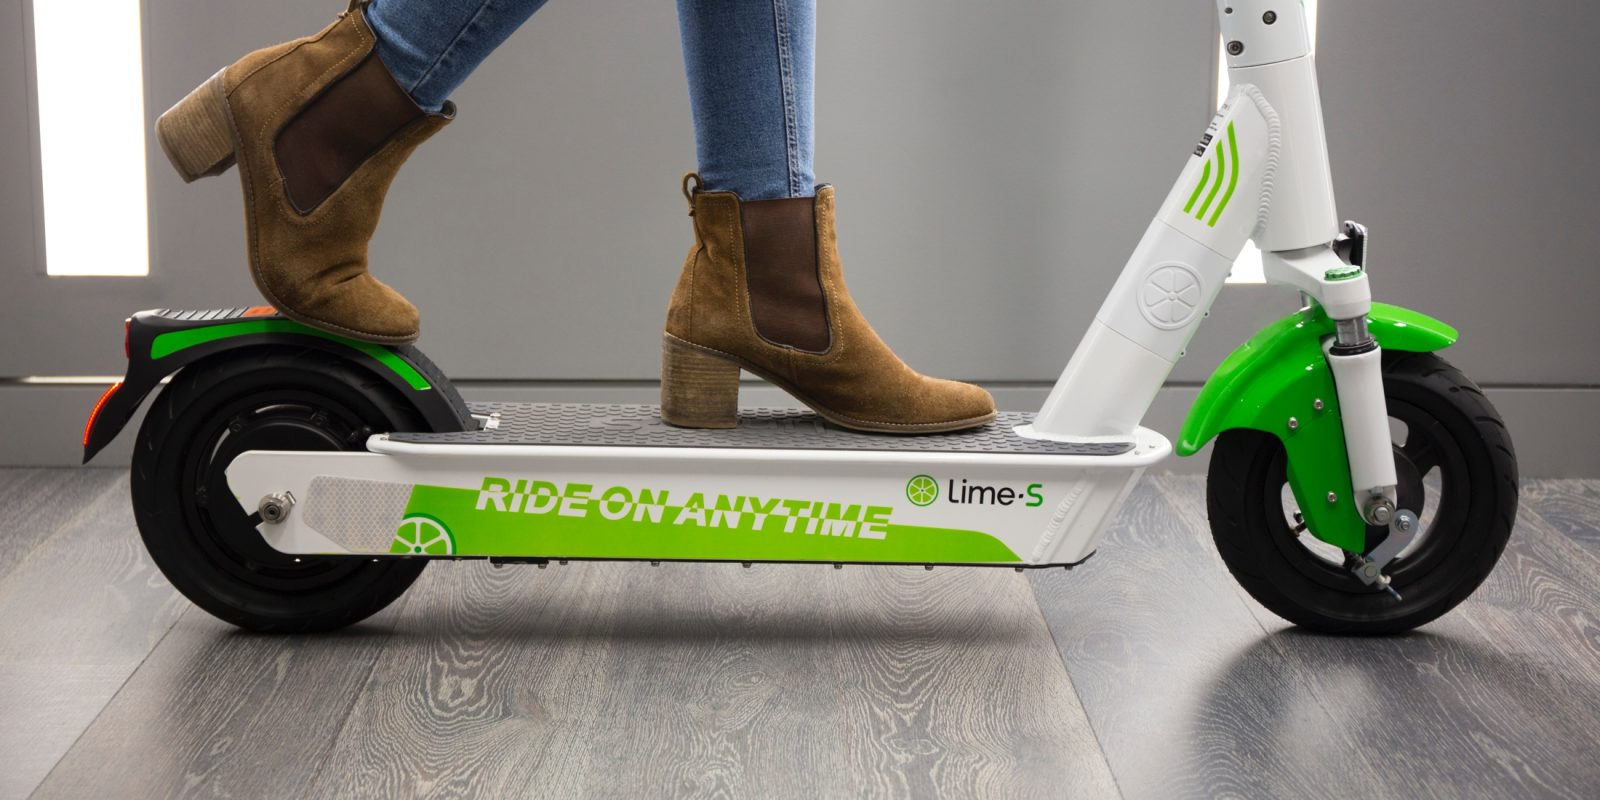 hight resolution of lime unveils new electric scooter fuels the e scooter arms race